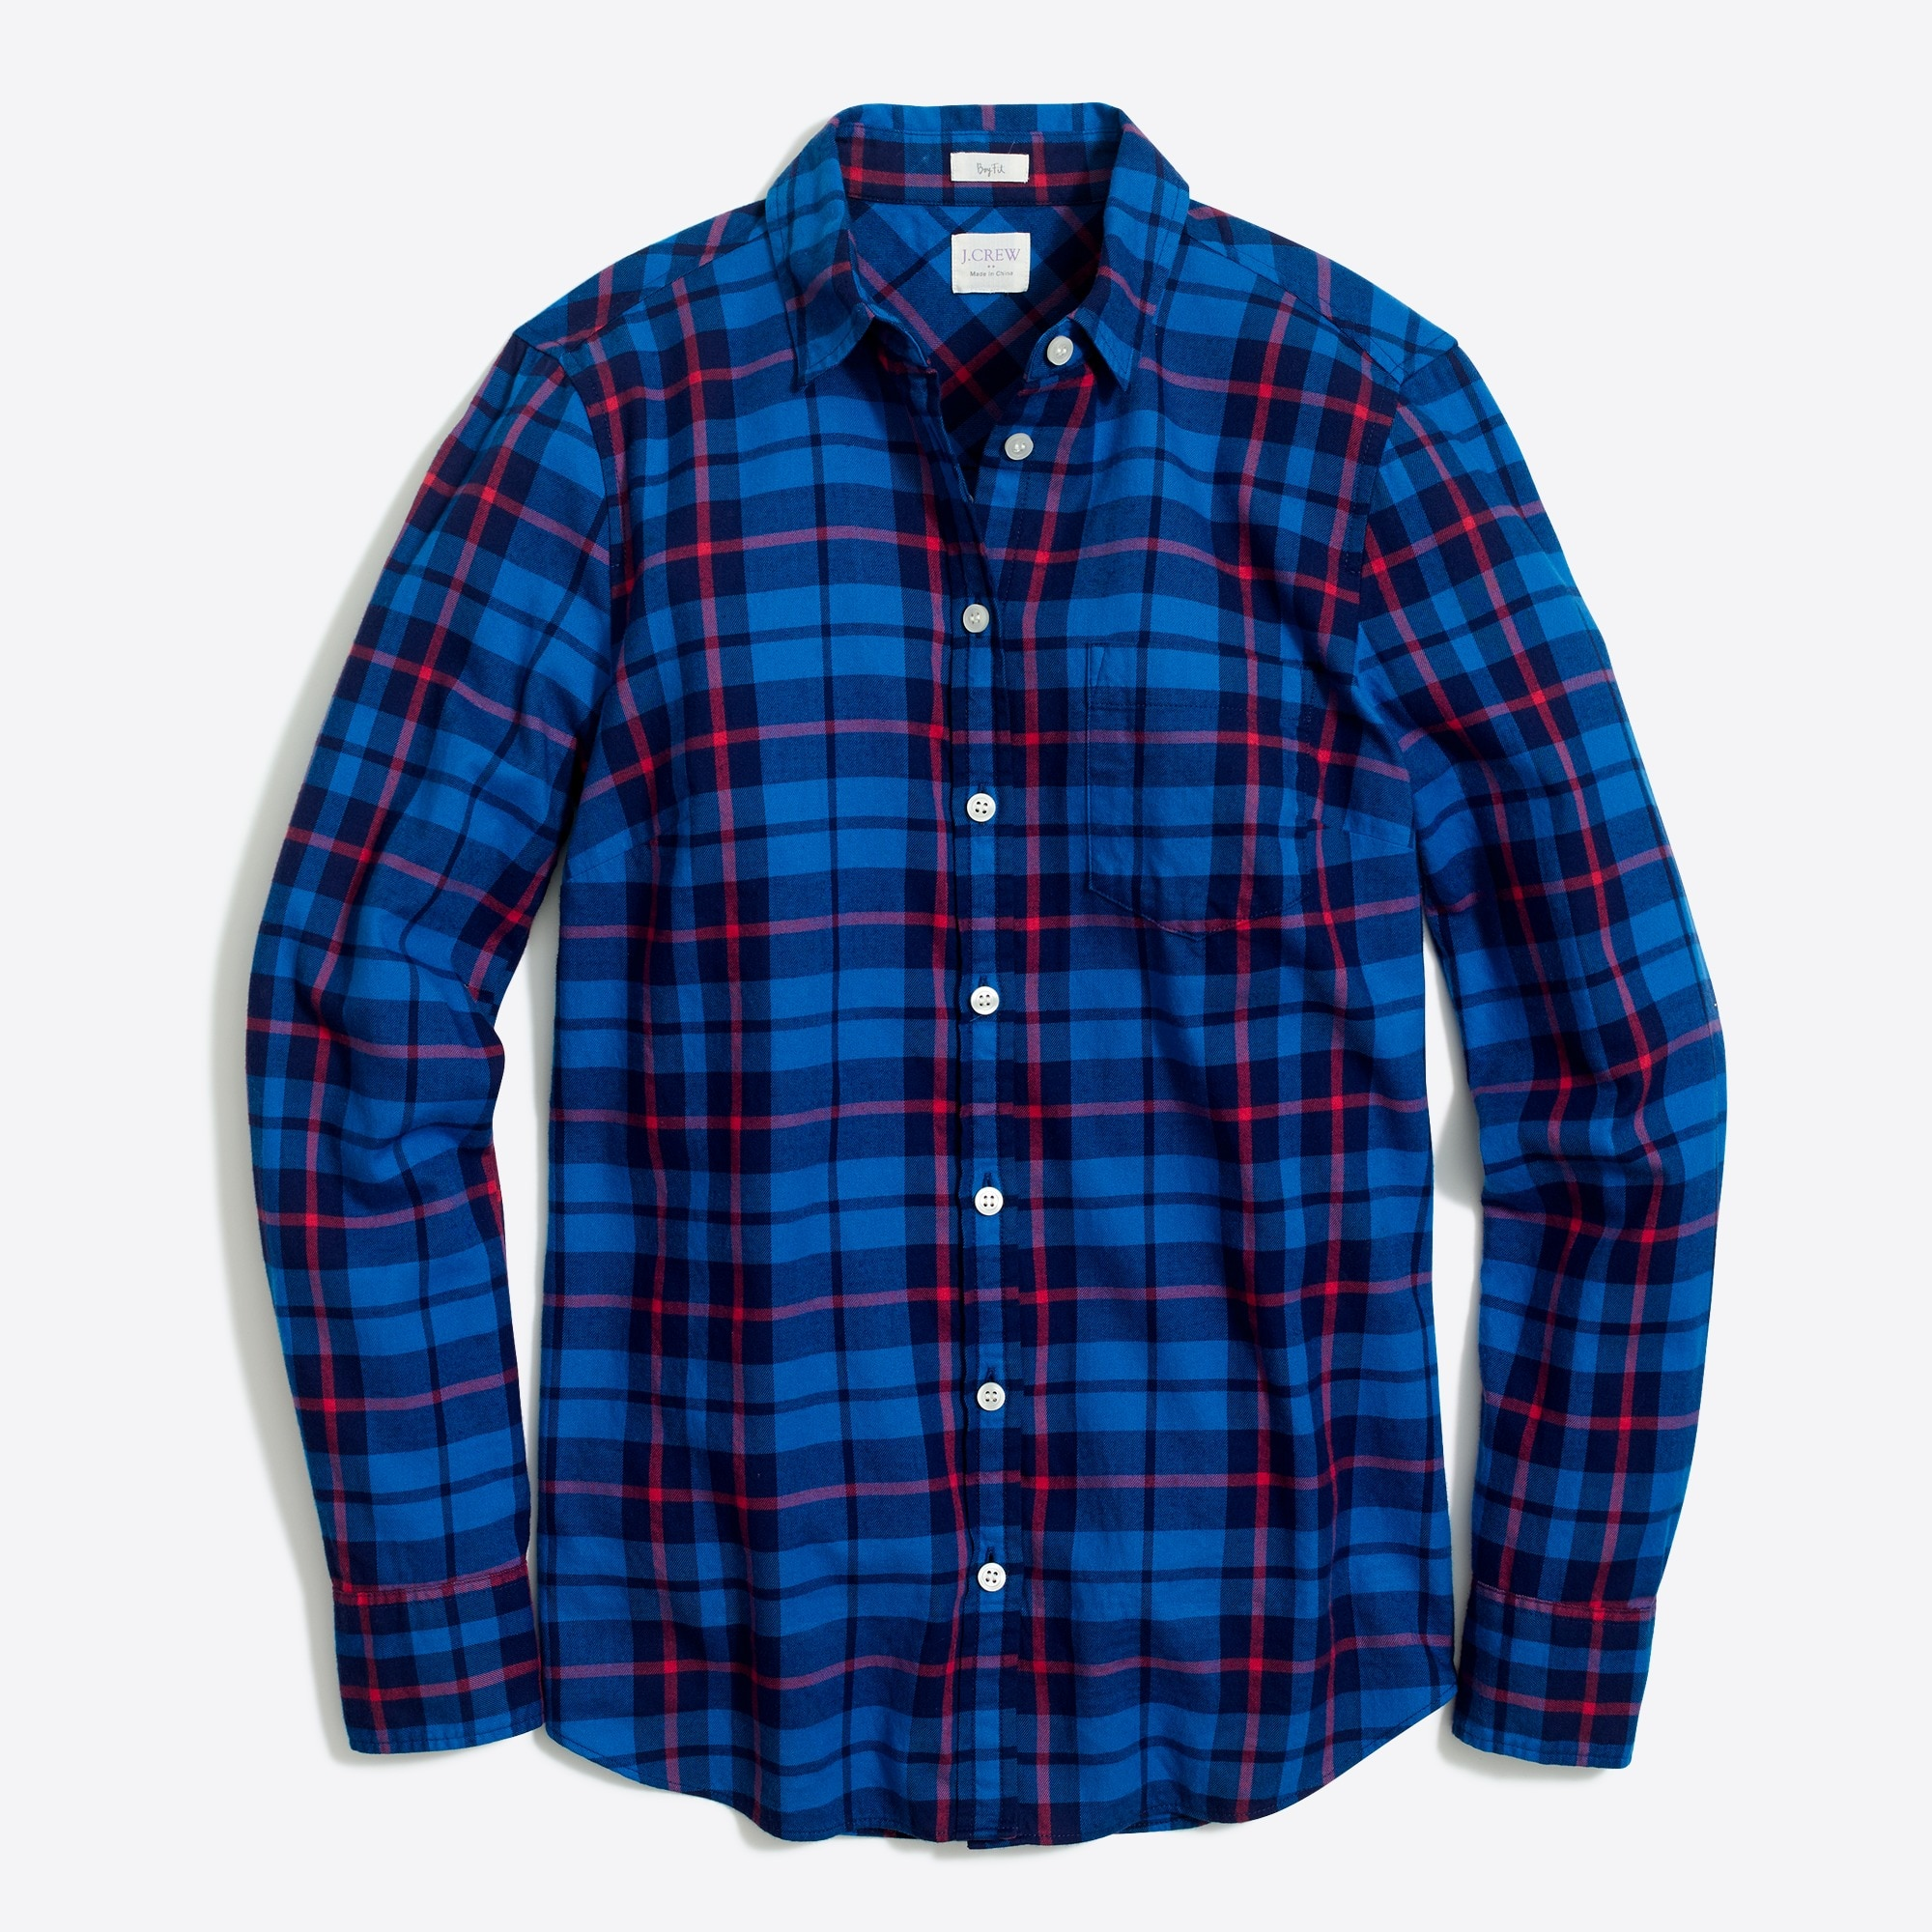 Wear the flannel shirt with   different styles to look trendy